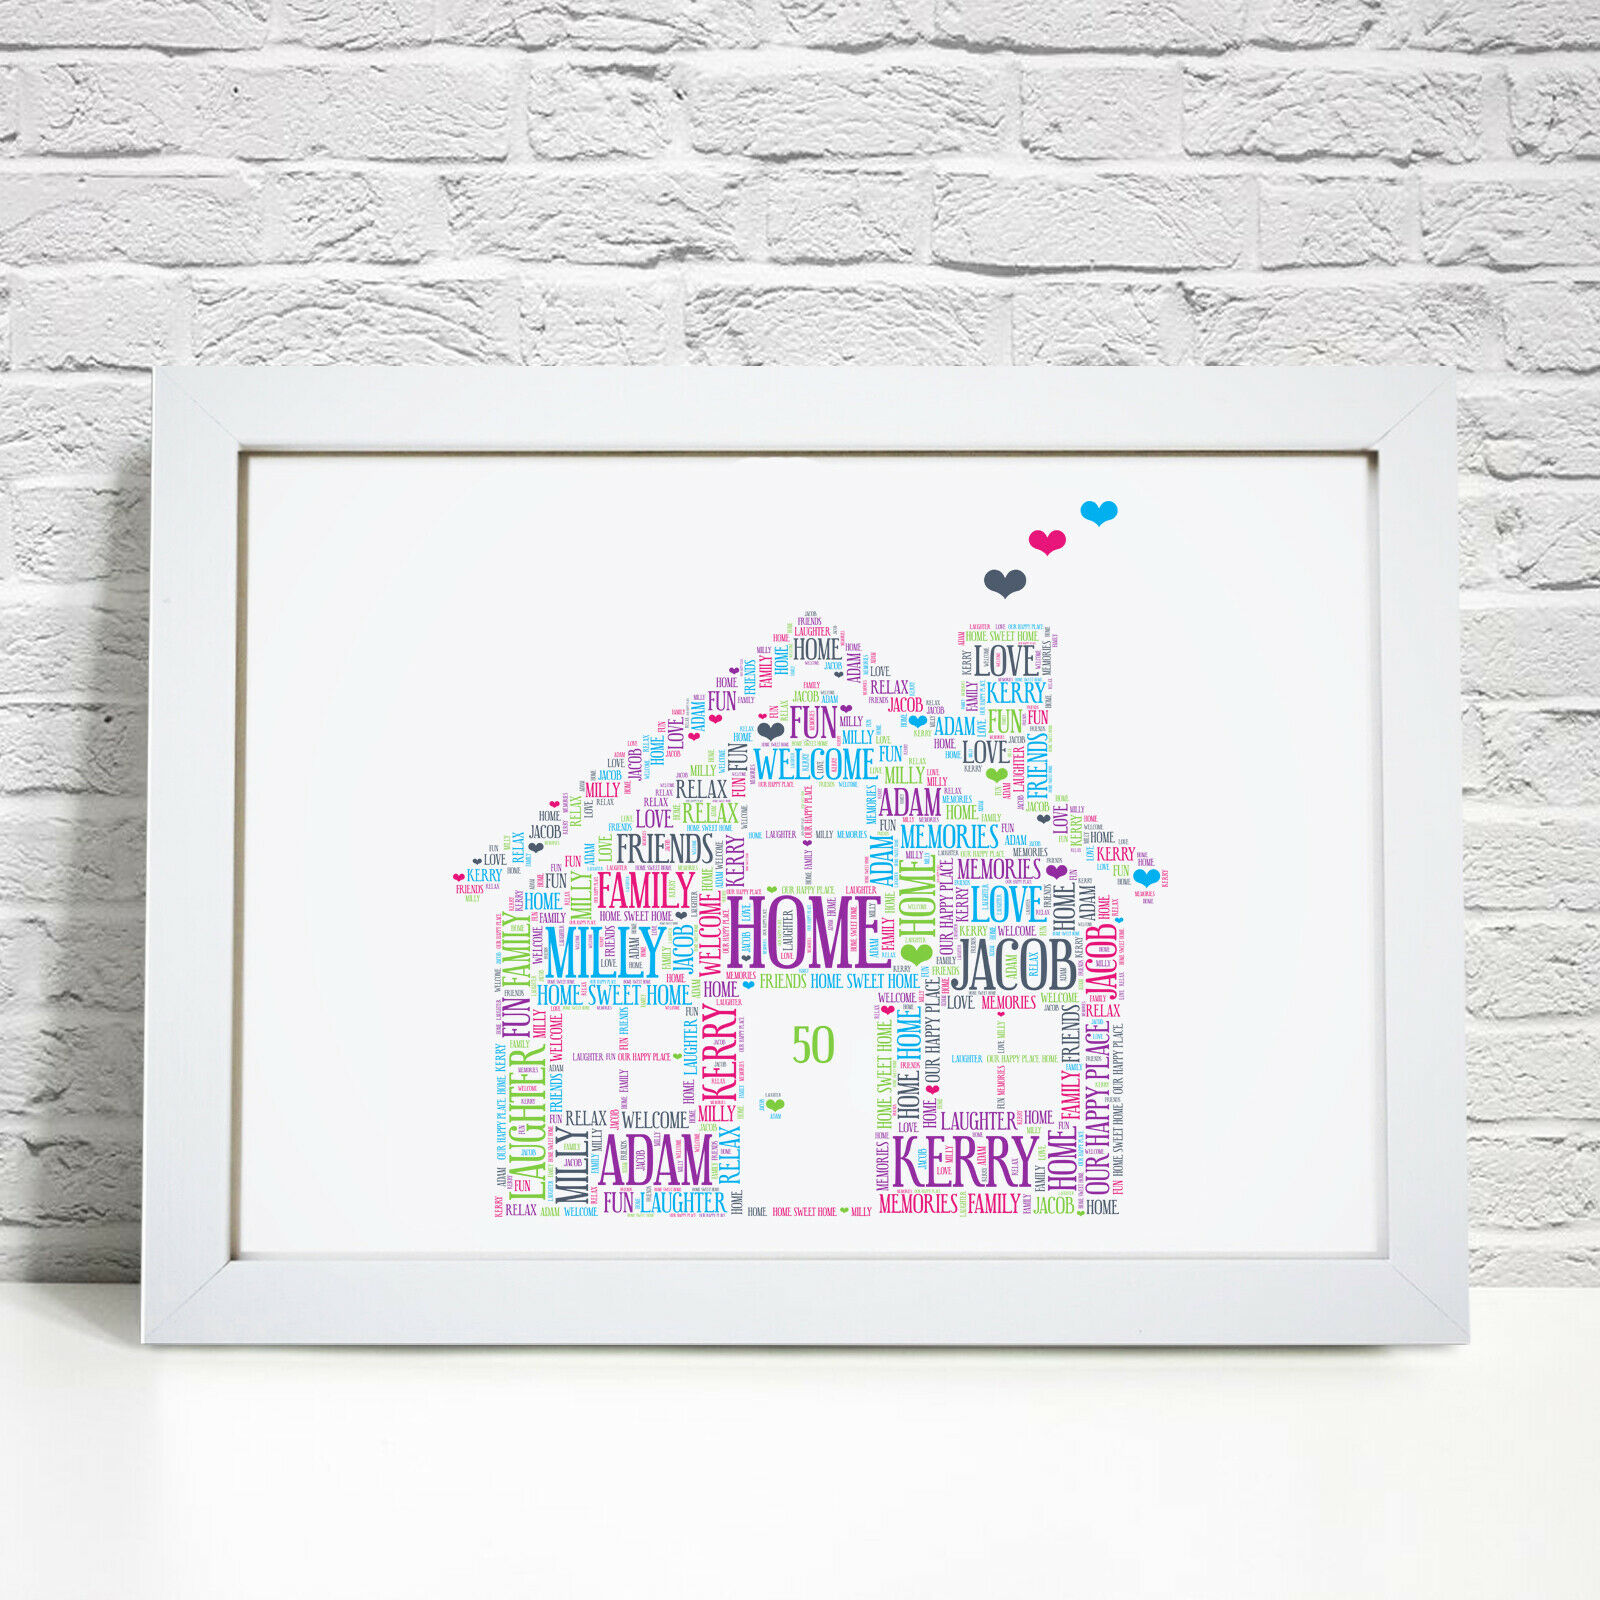 PERSONALISED WORD ART New Home Family House Warming Gift Picture ...